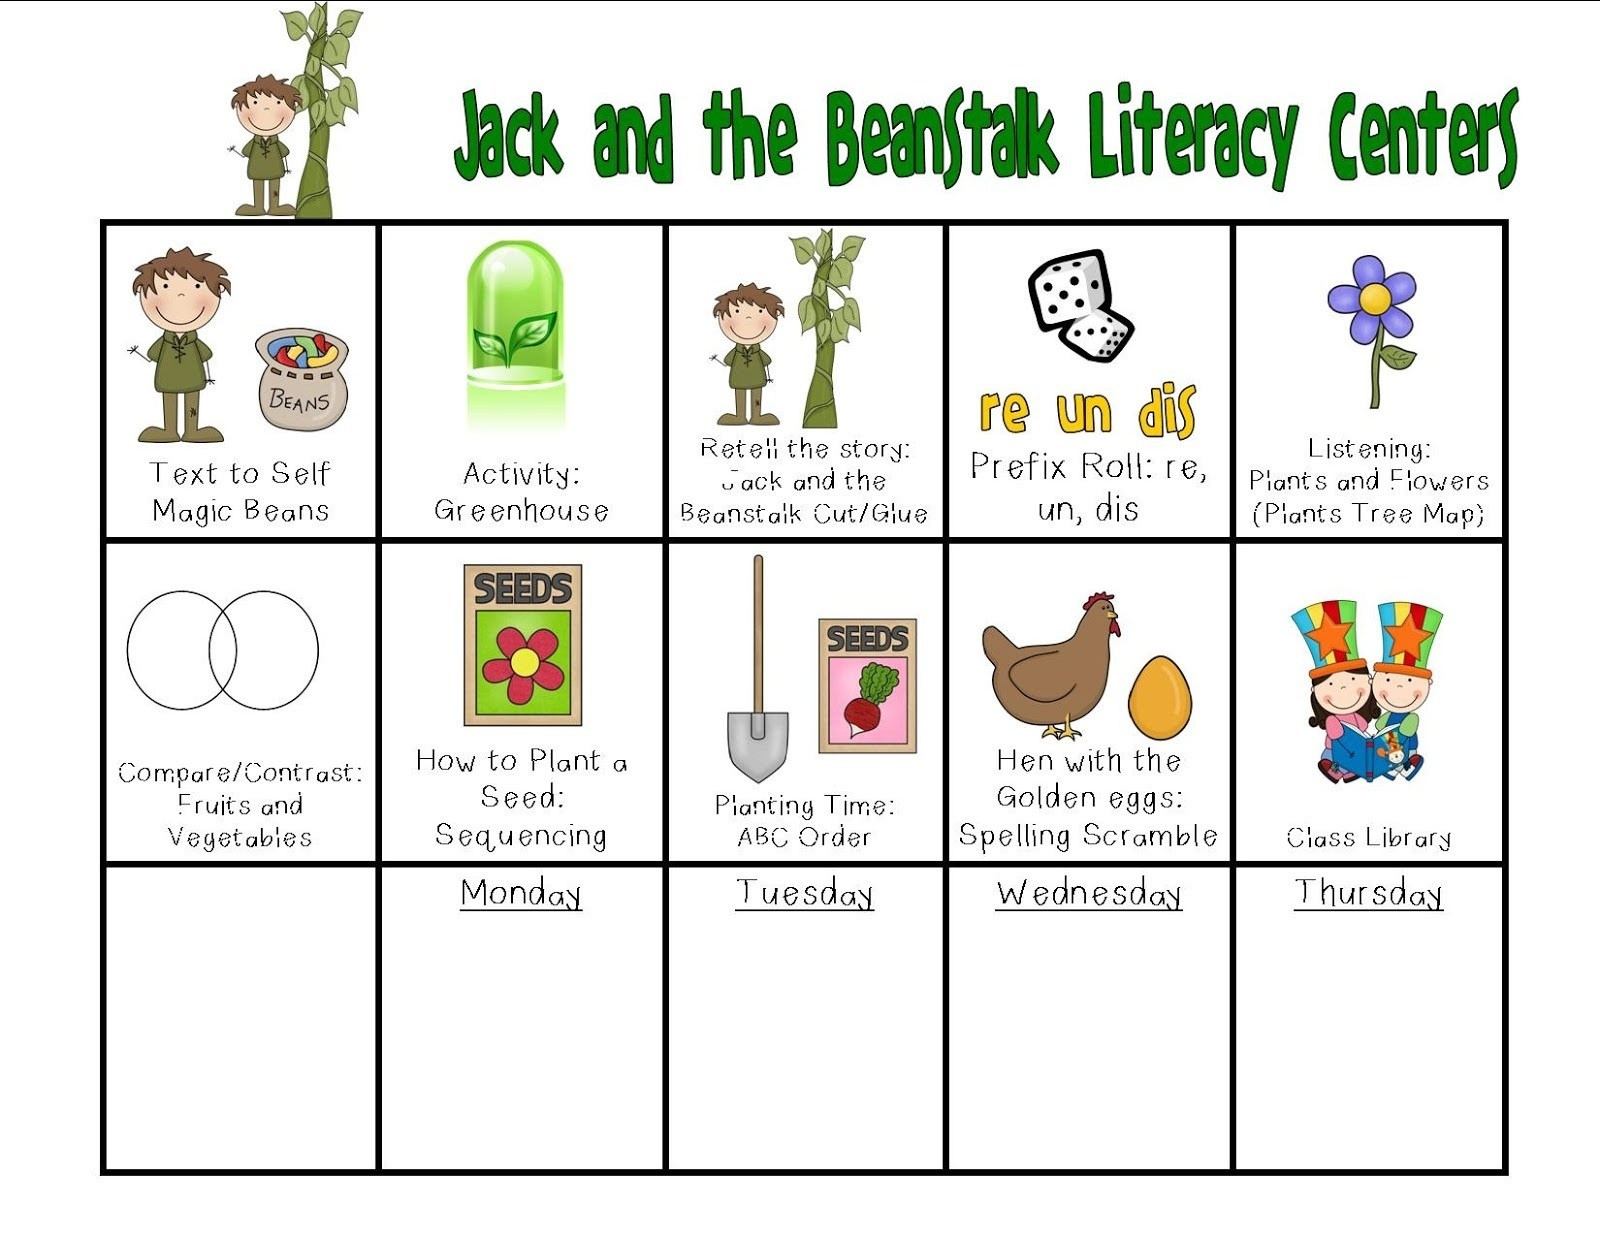 Jack And The Beanstalk Free Printable Activities – Orek - Jack And The Beanstalk Free Printable Activities